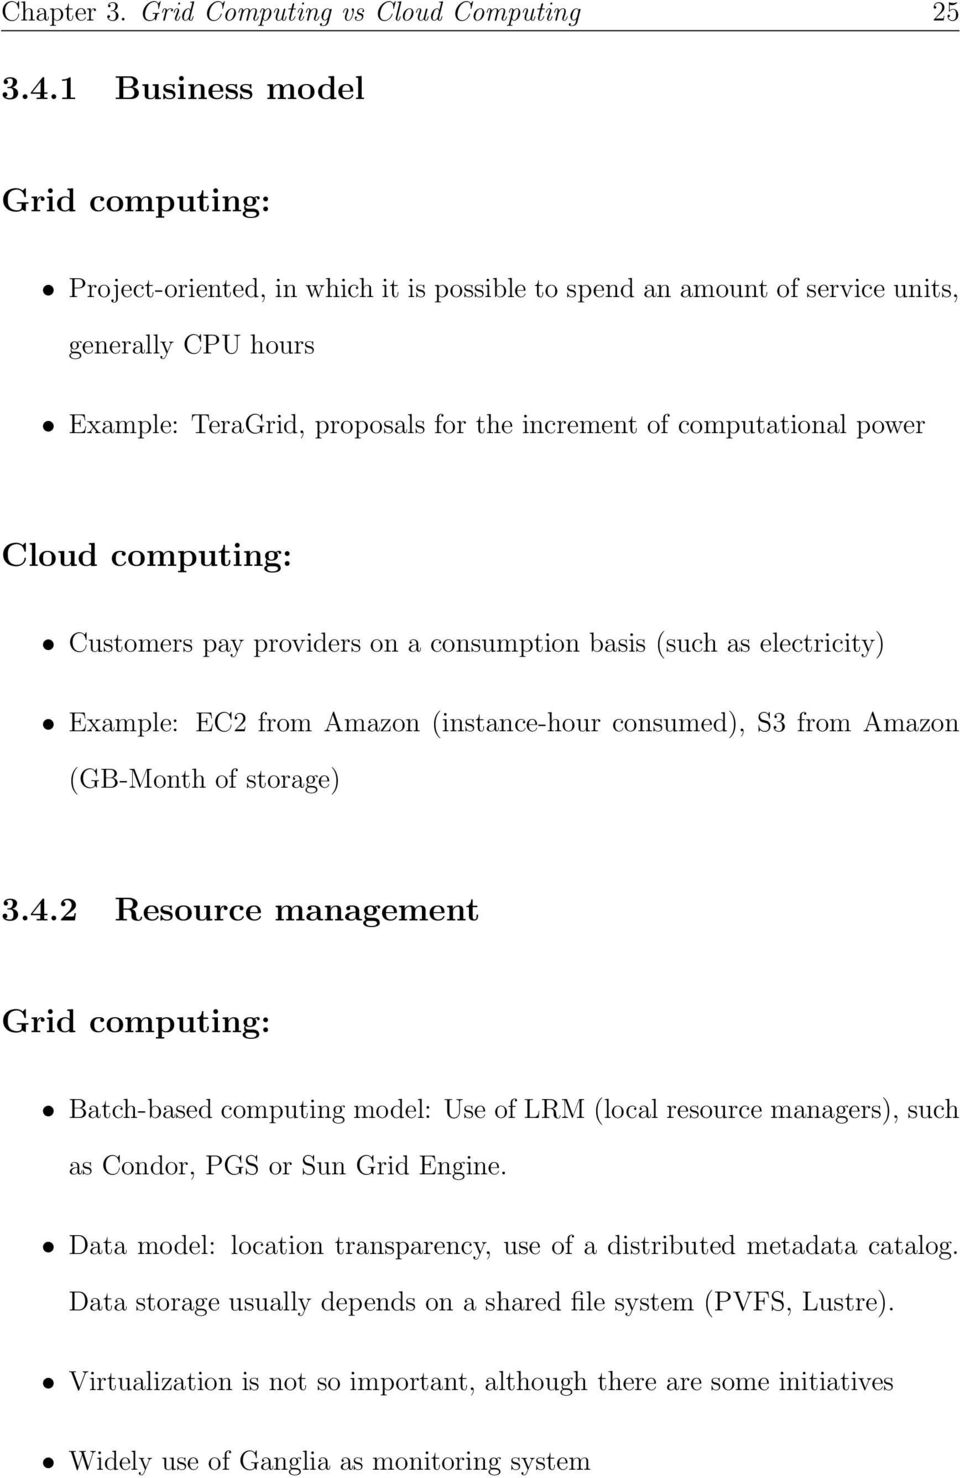 power Cloud computing: Customers pay providers on a consumption basis (such as electricity) Example: EC2 from Amazon (instance-hour consumed), S3 from Amazon (GB-Month of storage) 3.4.